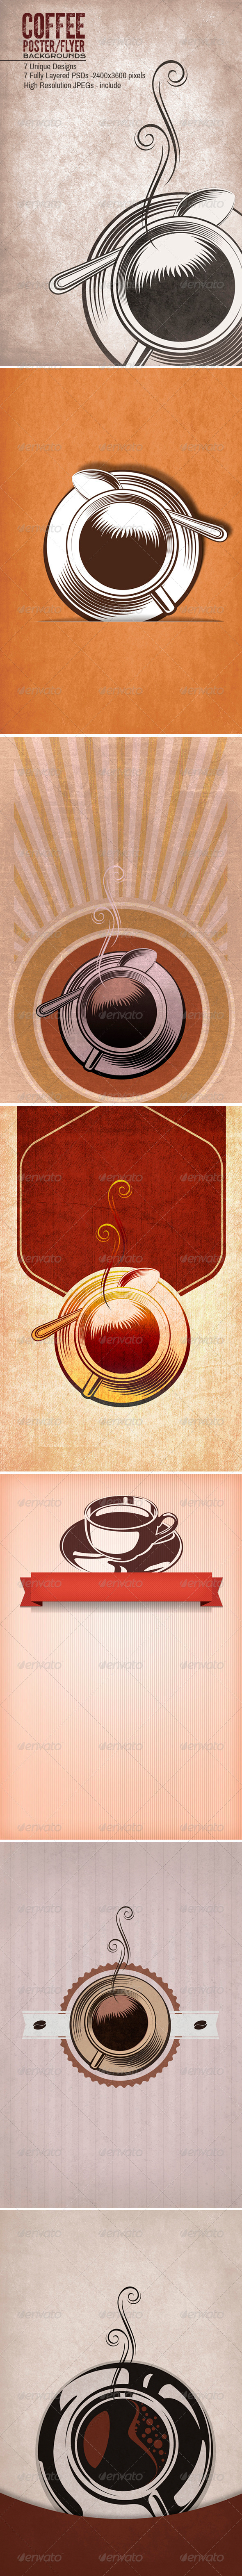 Coffee Tea Poster/Flyers Backgrounds - Miscellaneous Backgrounds